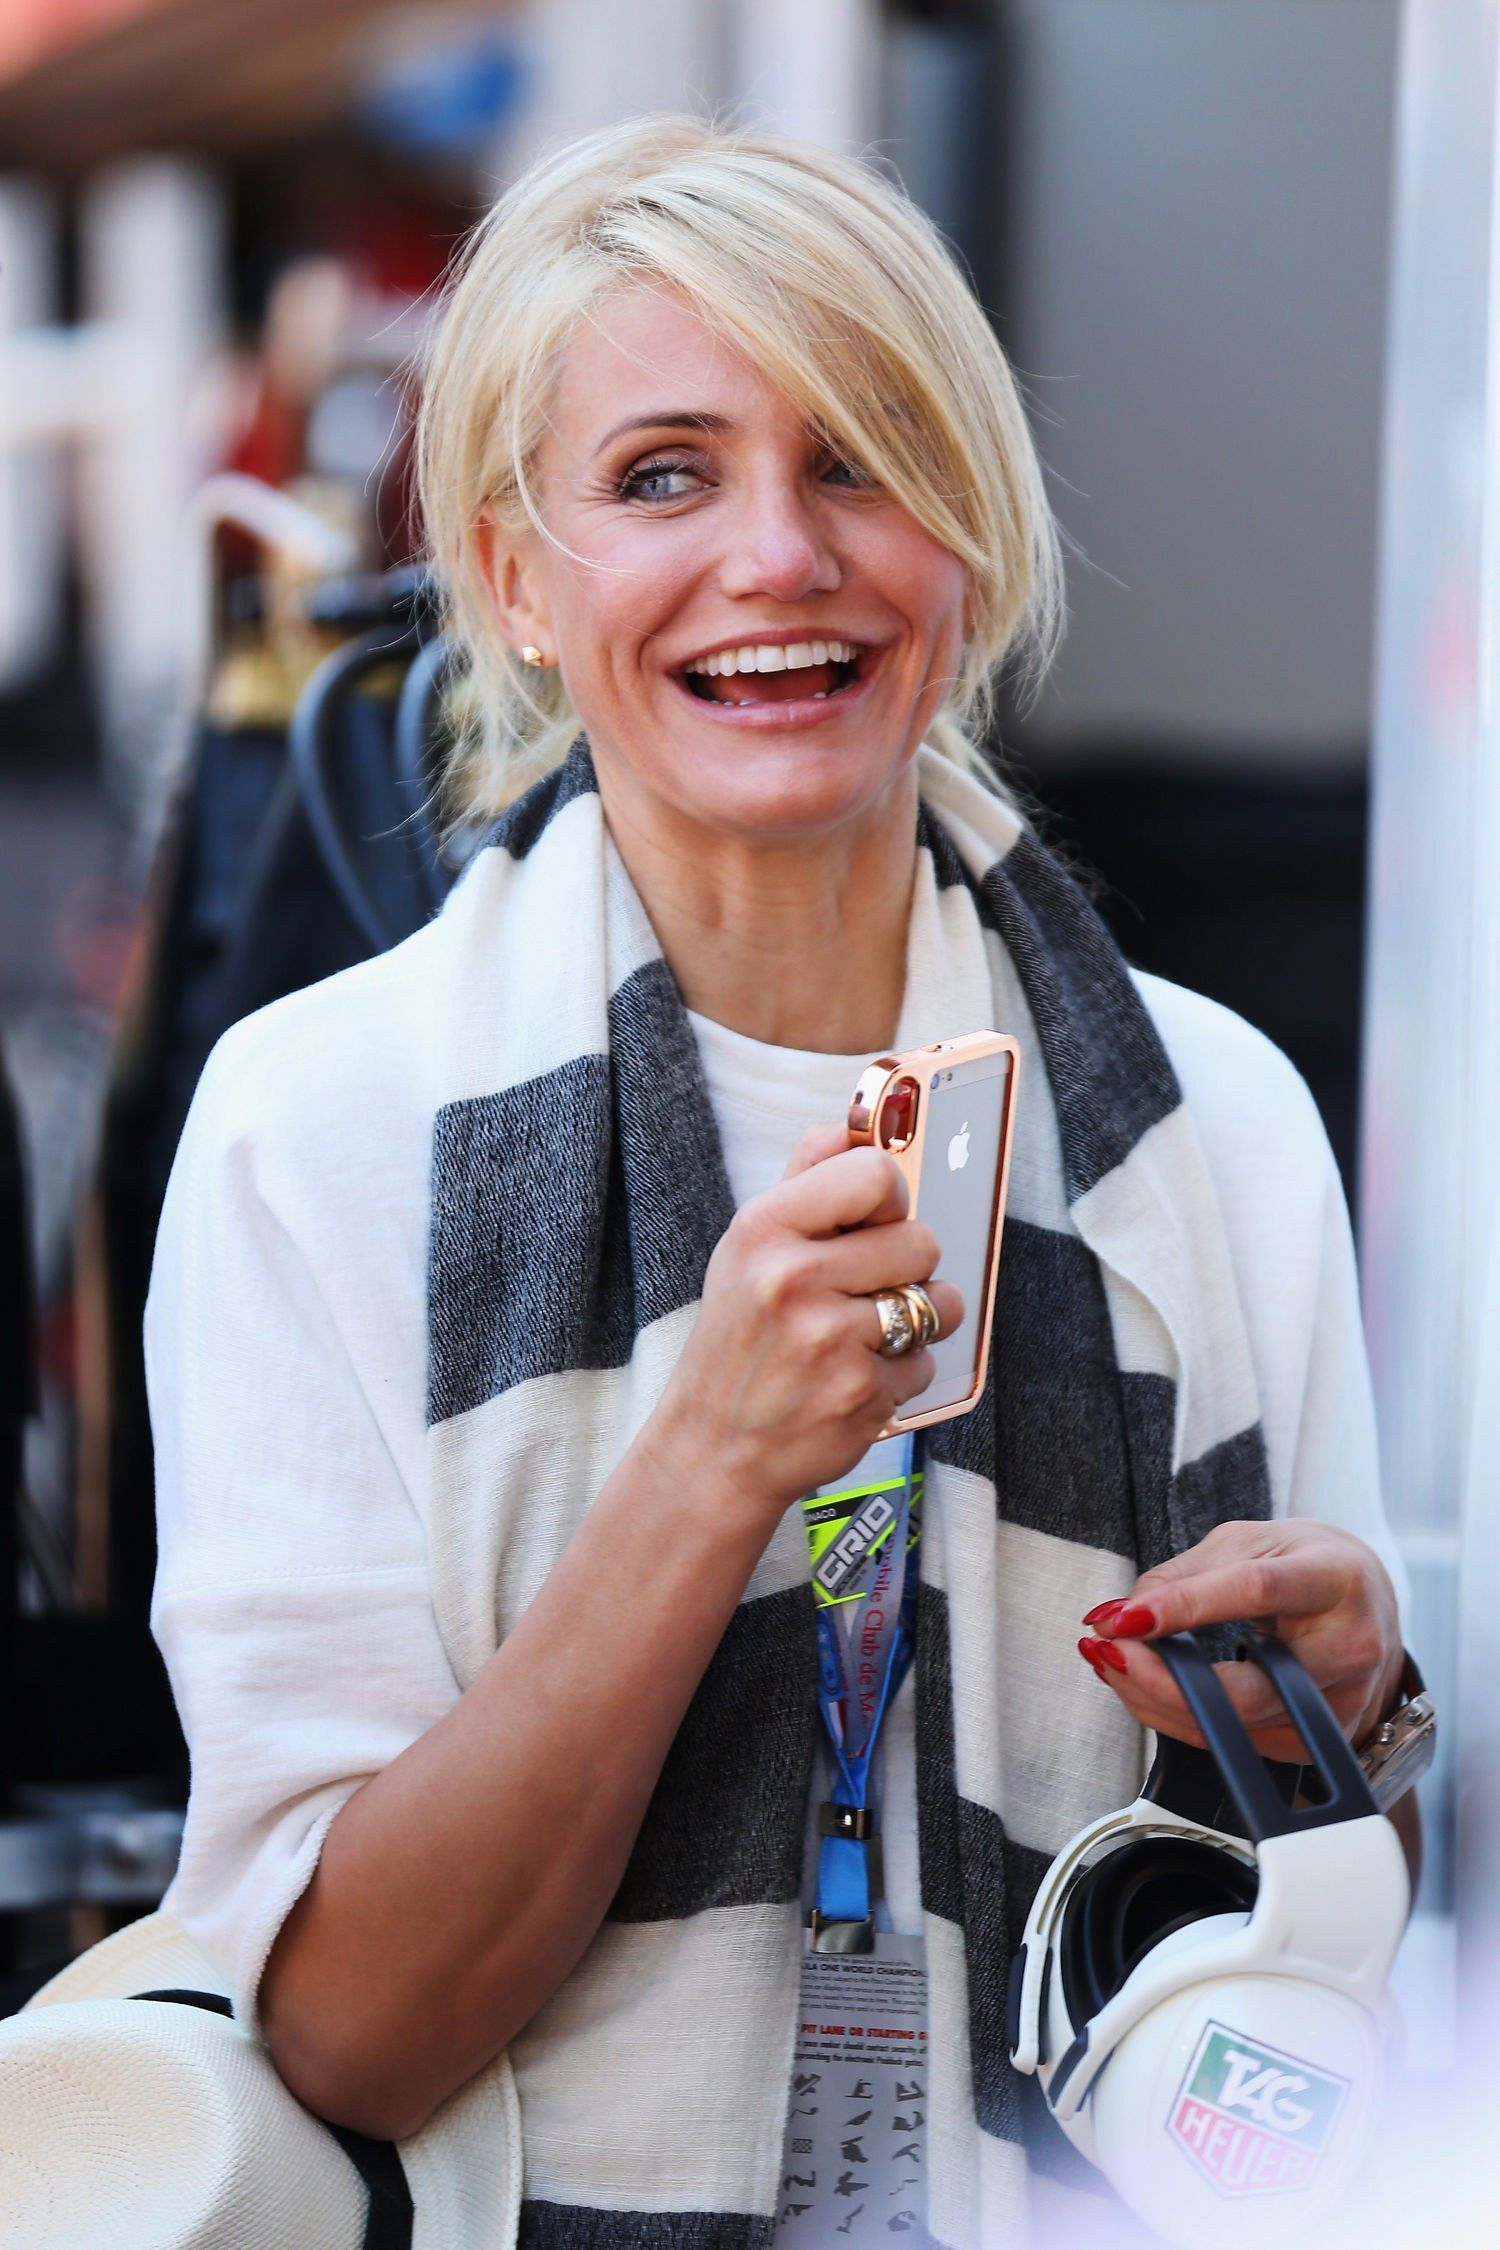 Cameron Diaz The Holiday Hair Hair Color Ideas And Styles For 2018